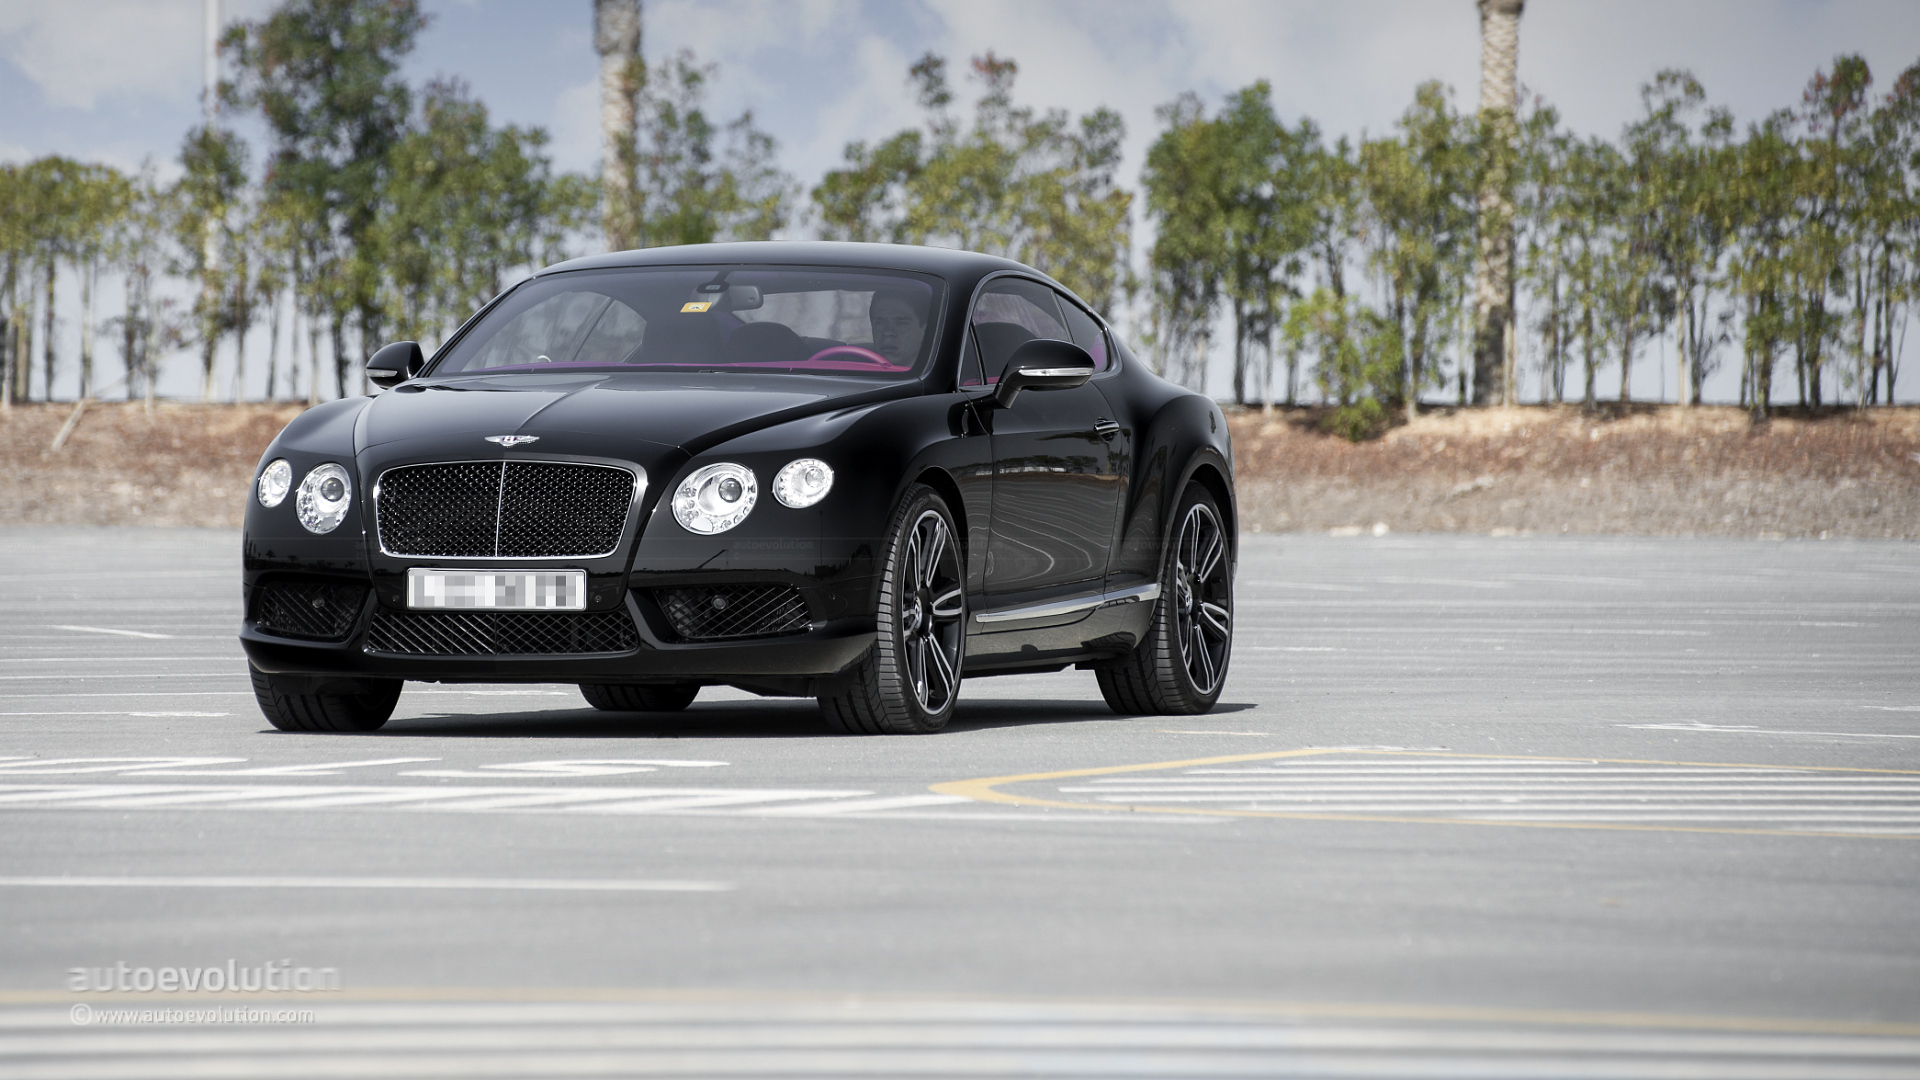 Bentley continental gt w12 review autoevolution - Bentley Continental Gt W12 Review Autoevolution 8